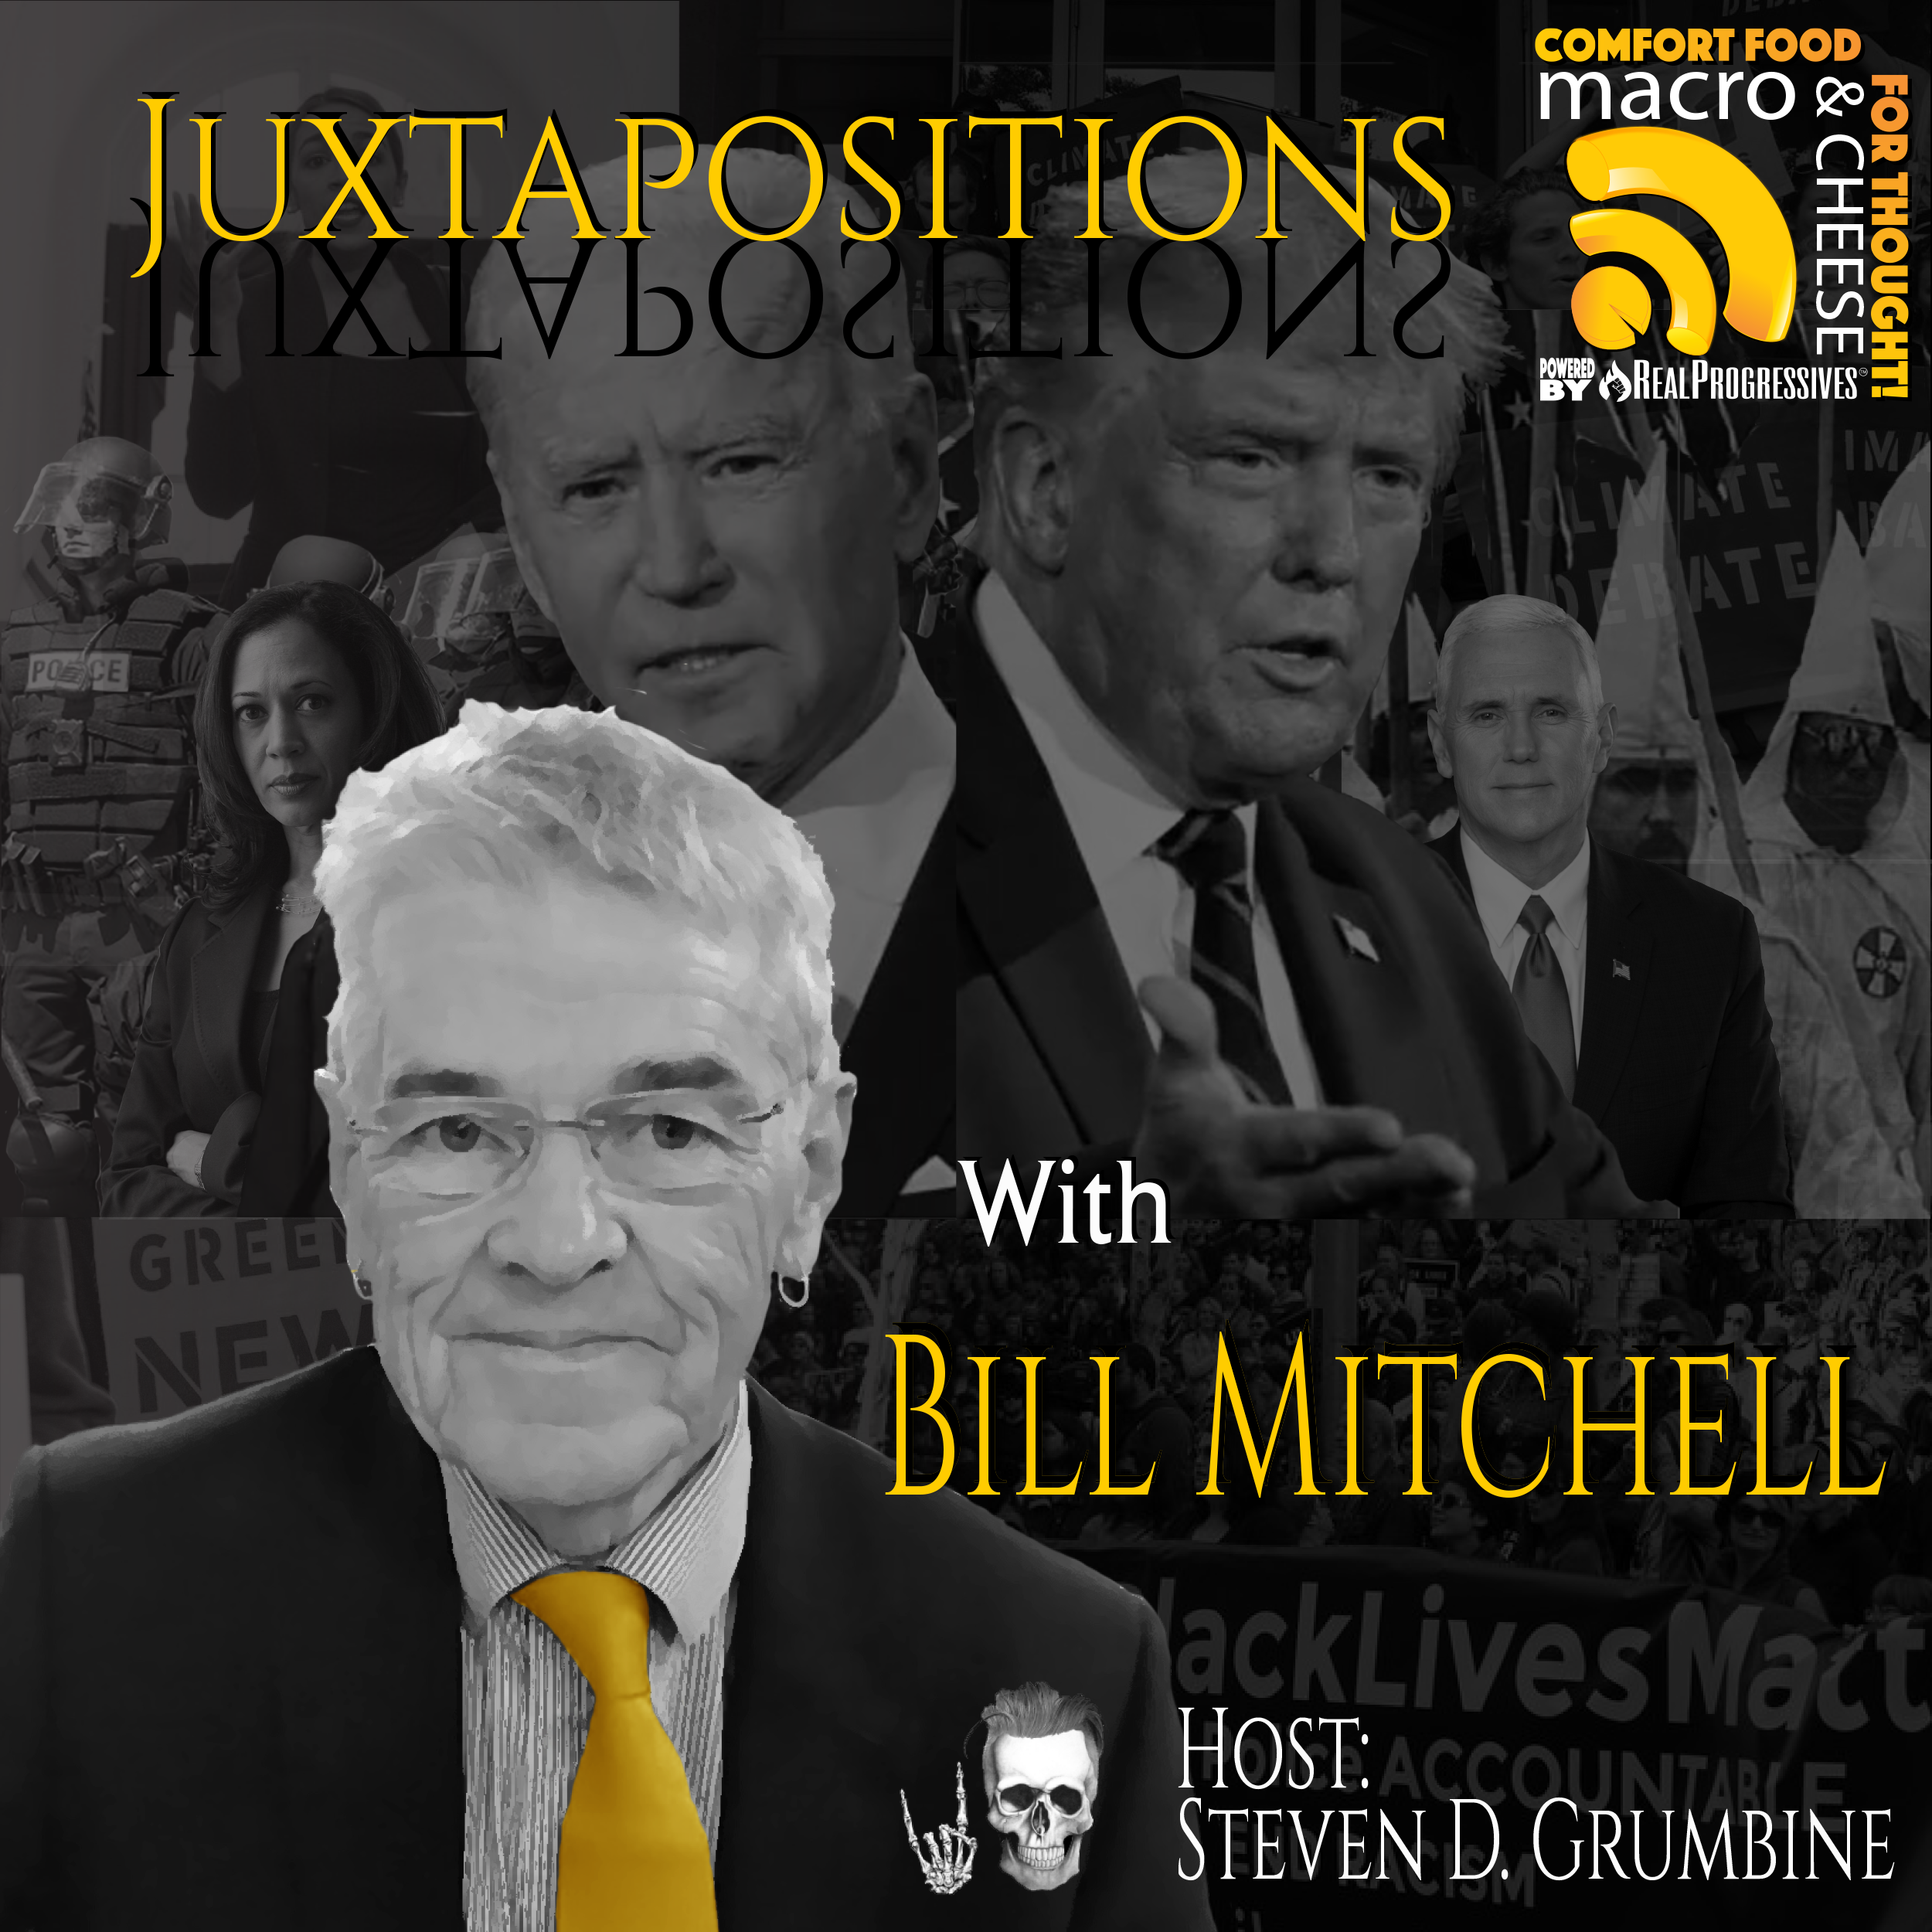 Juxtapositions with Bill Mitchell